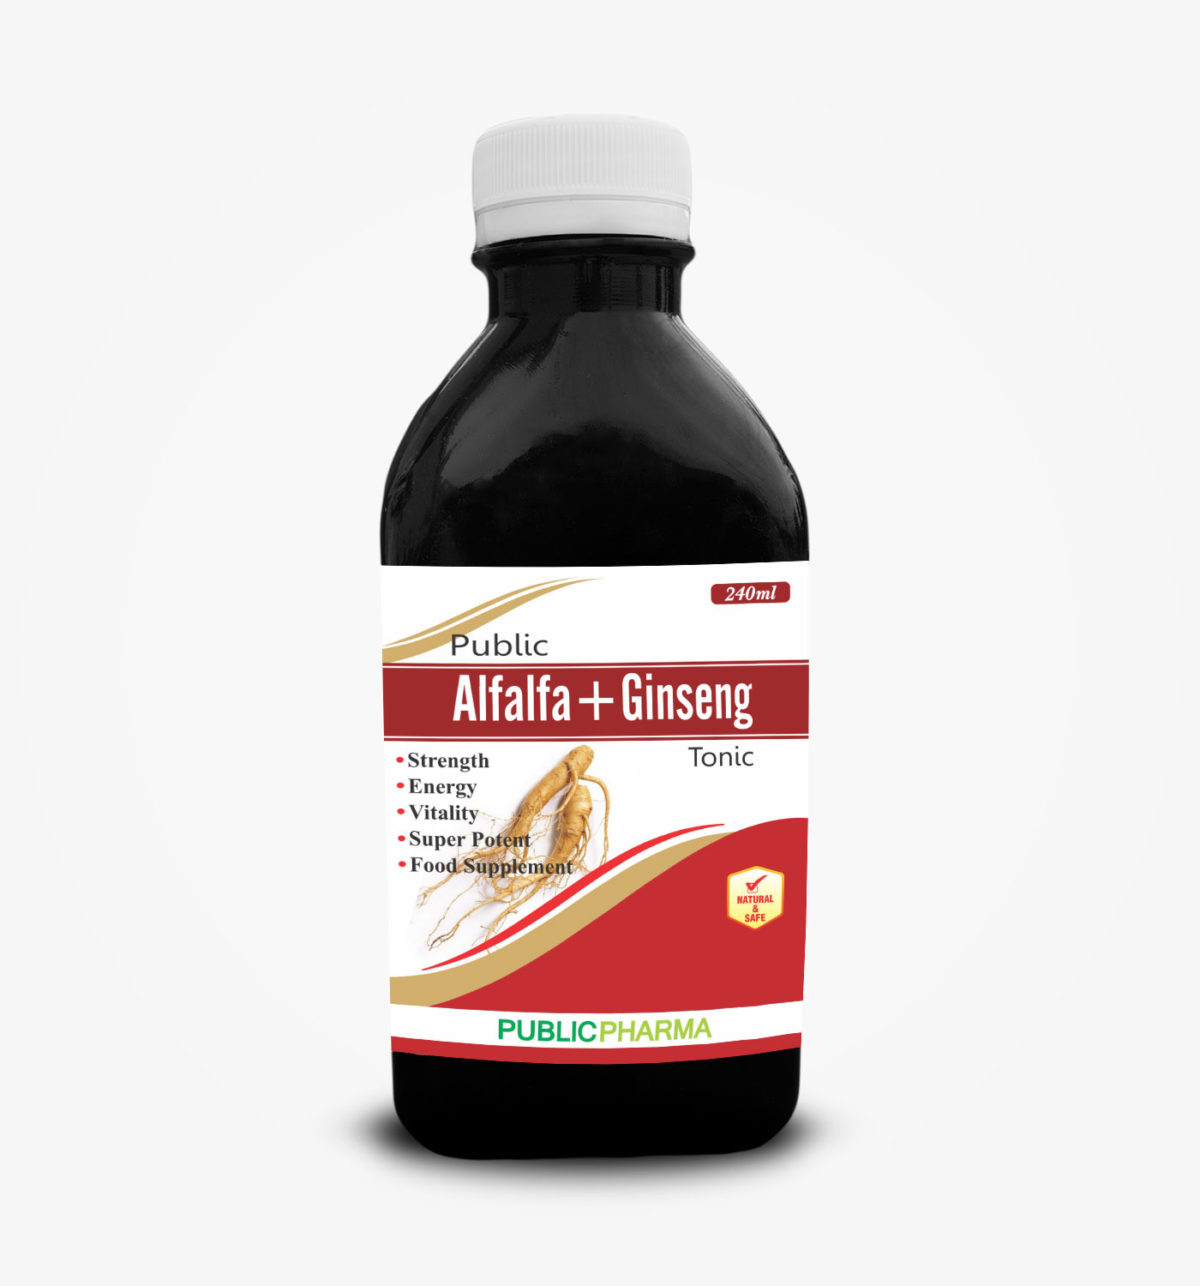 Alfalfa + Ginseng combination is an excellent tonic, Helpful for physical and mental exhaustion, anxiety due to overwork, Recommended for subside anaemia, loss of appetite, convalescence especially after debilitating feners,pregnancy surgical operations and loss of weight.